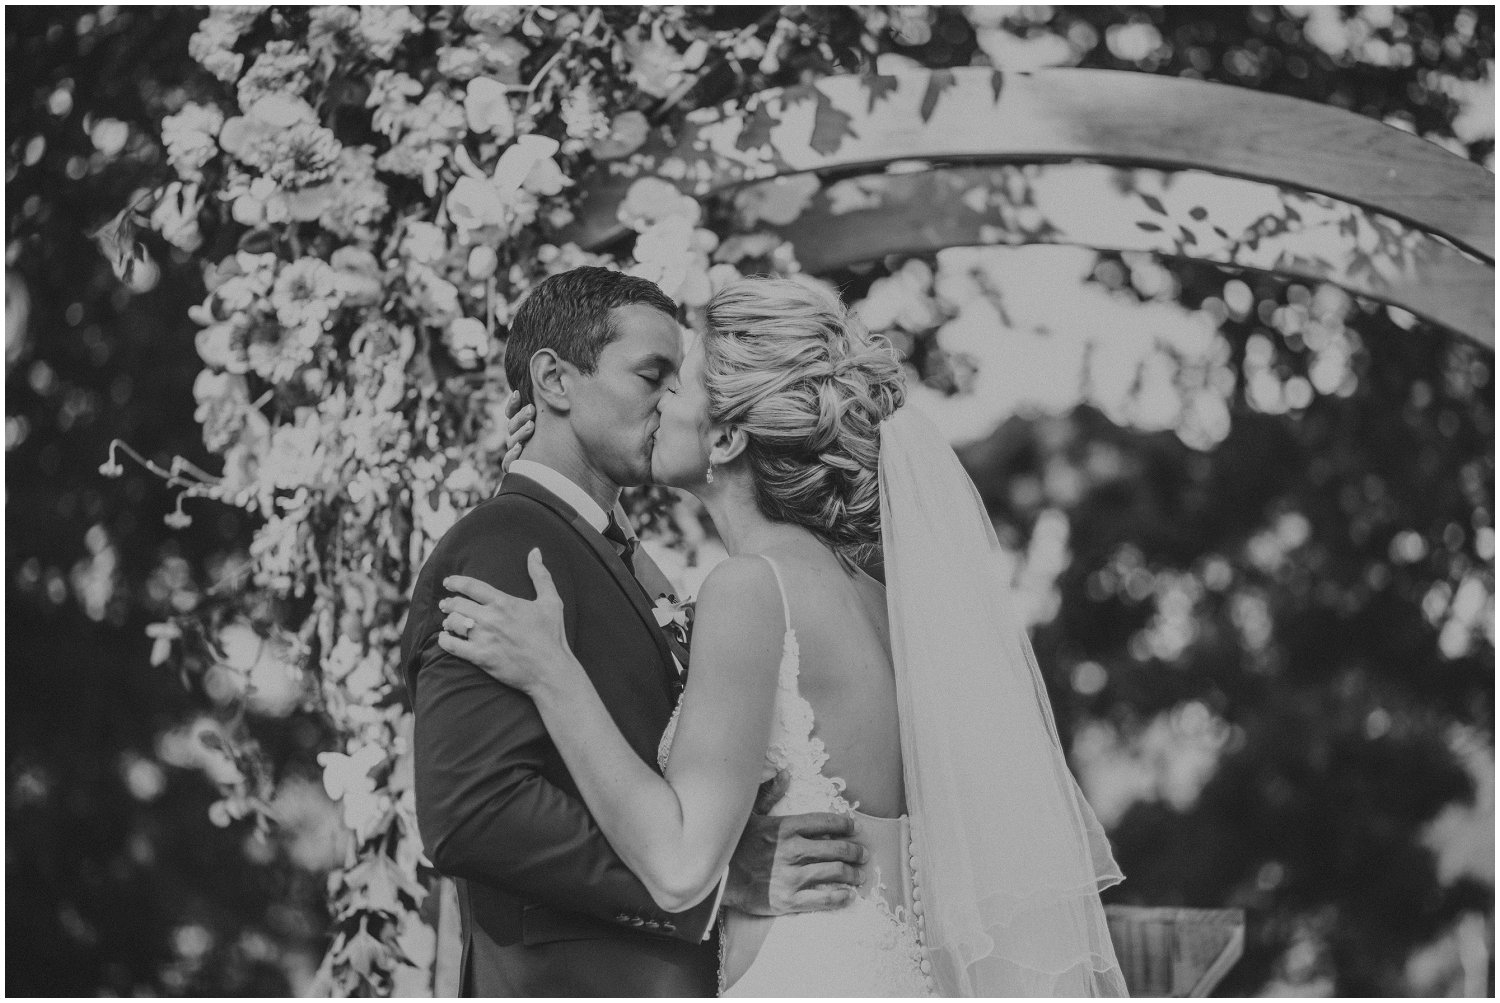 Top Artistic Creative Documentary Wedding Photographer Cape Town South Africa Rue Kruger_0114.jpg